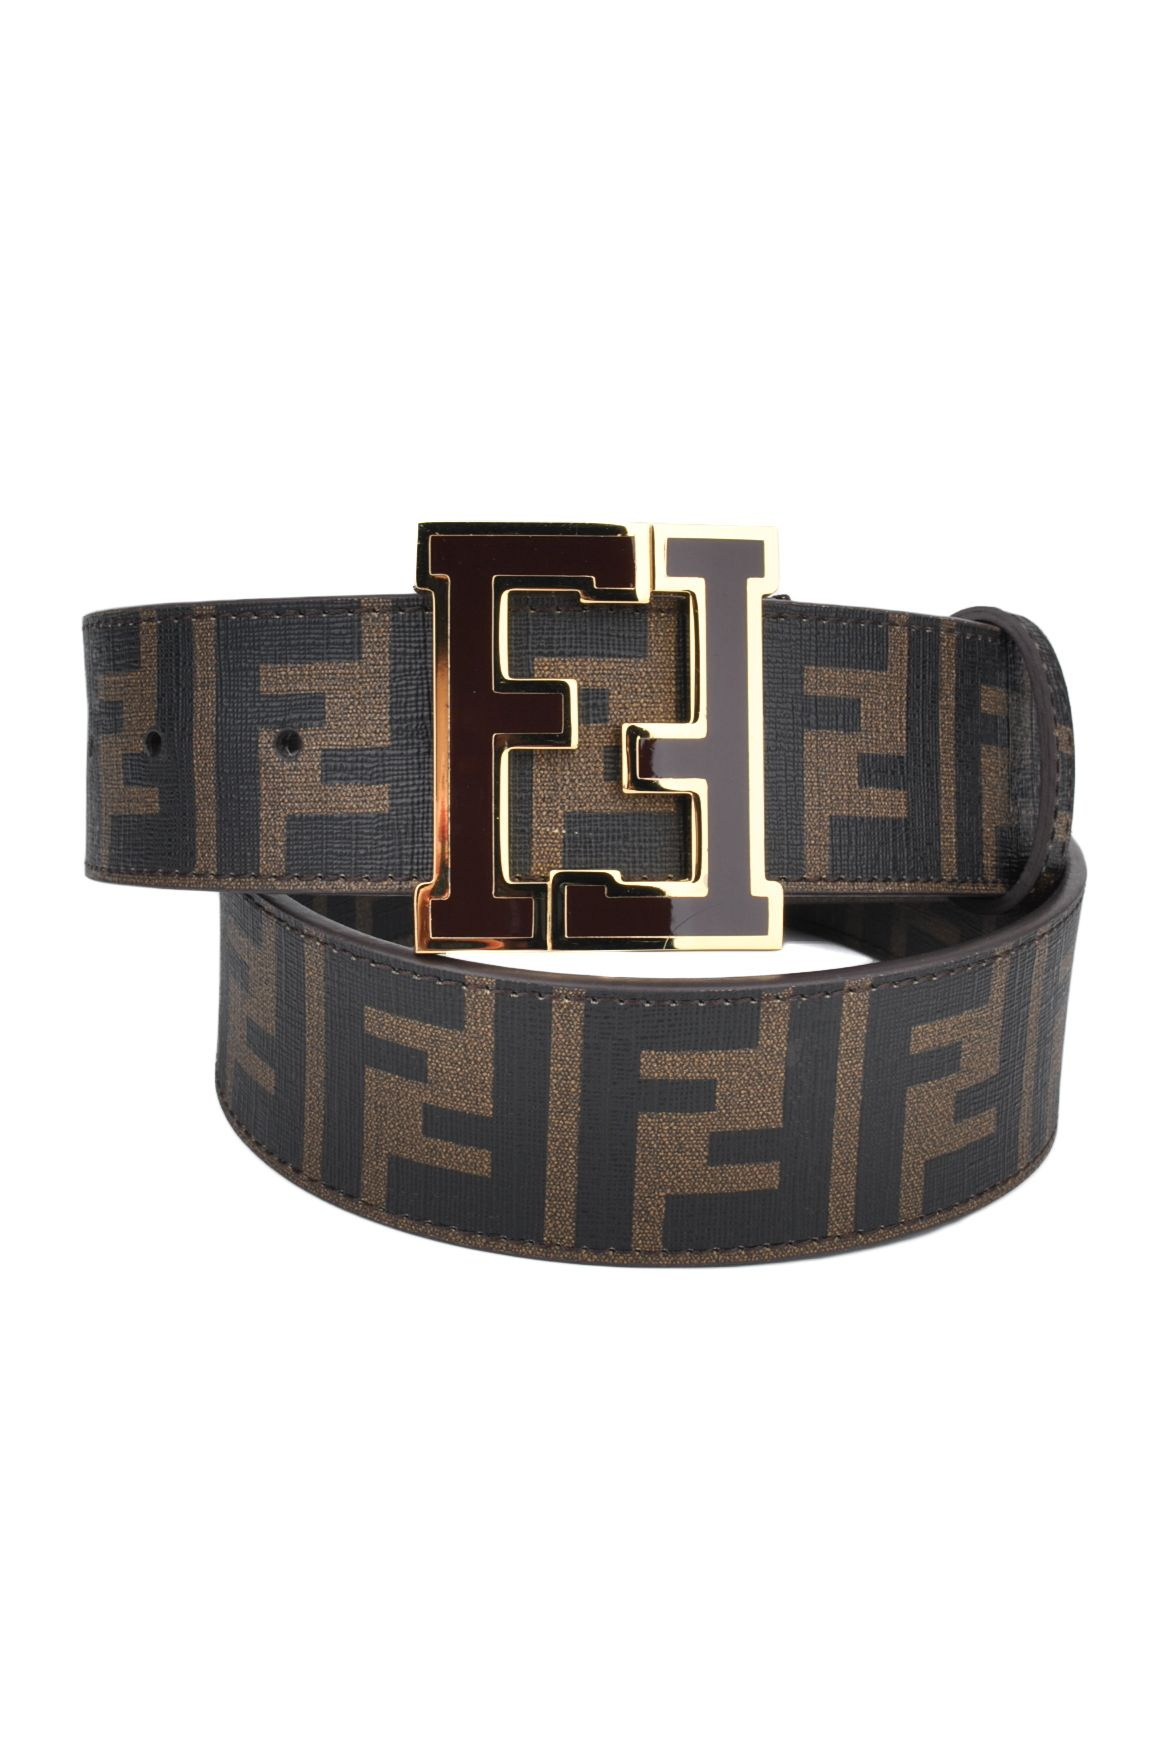 Too exclusive . | Fendi belt, Mens designer belts, Mens